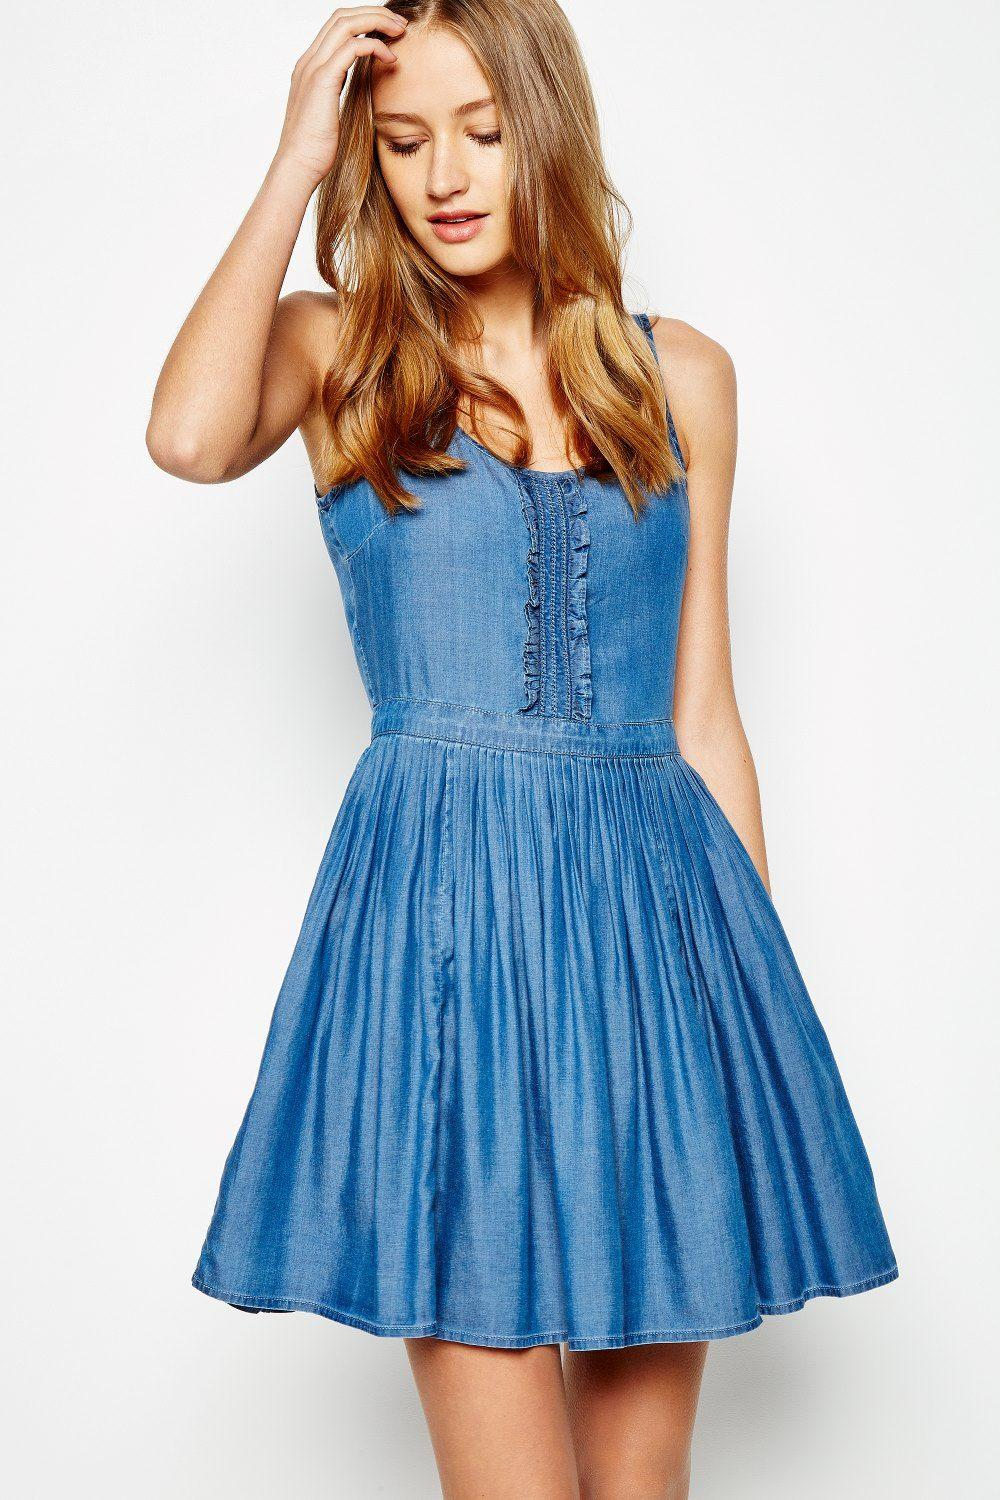 Up to 60% Off Women's Dresses @ Jack Wills